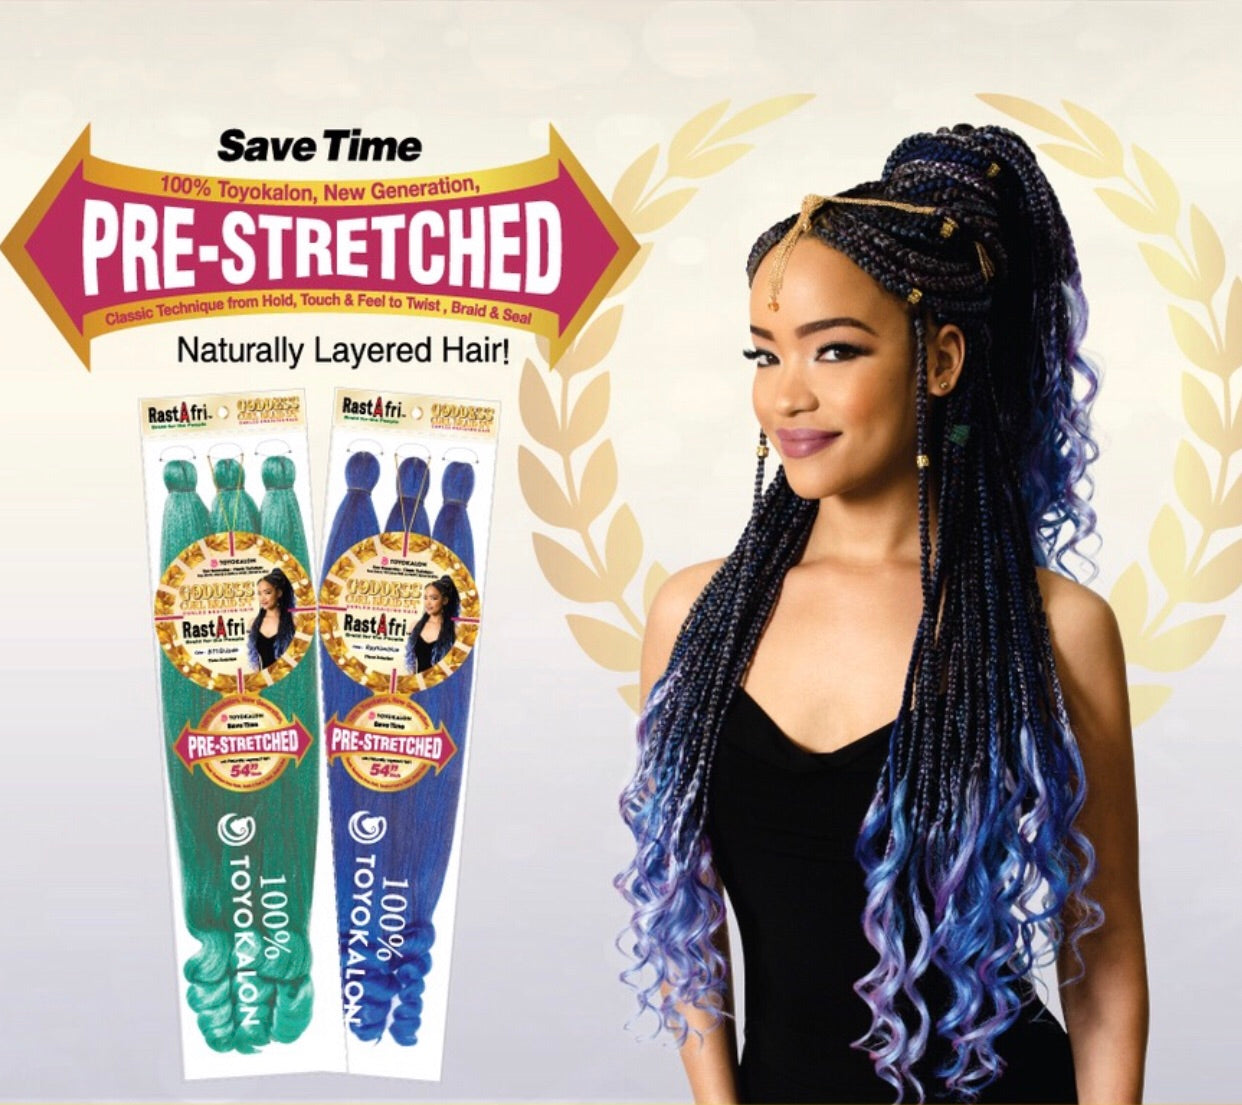 "RastaFri Goddess Curl Braid 54"" PreStretch"